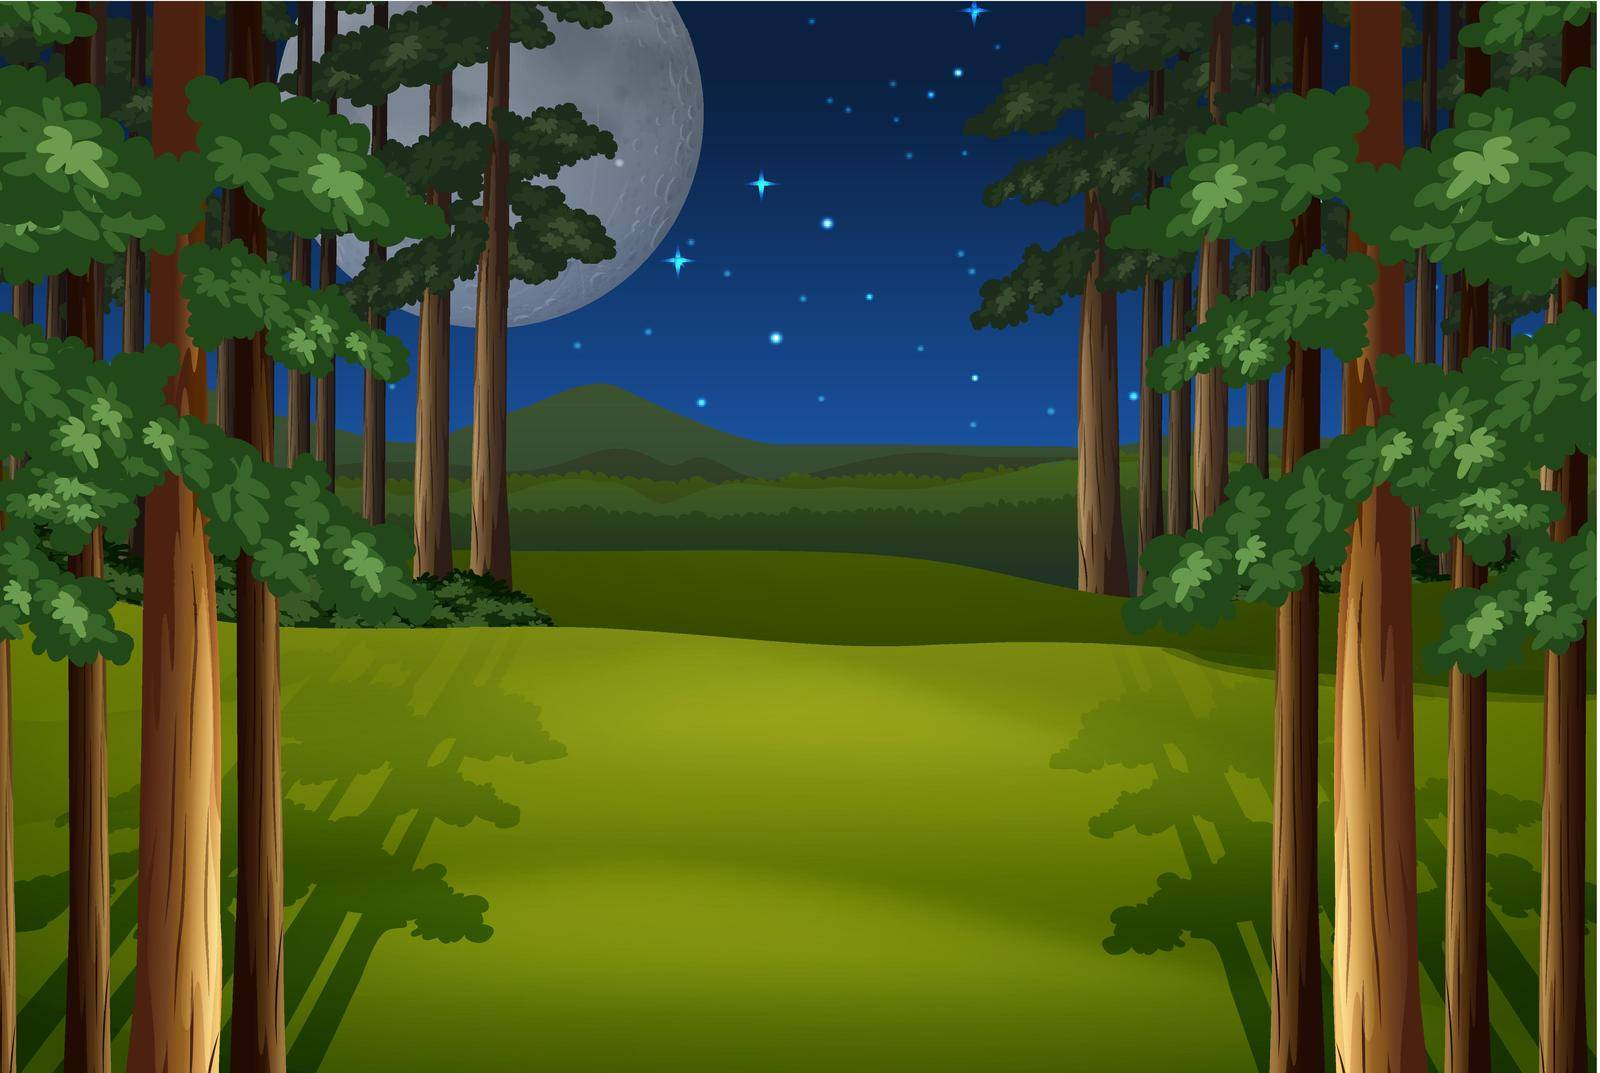 Scenery of a forest on a full moon night with stars